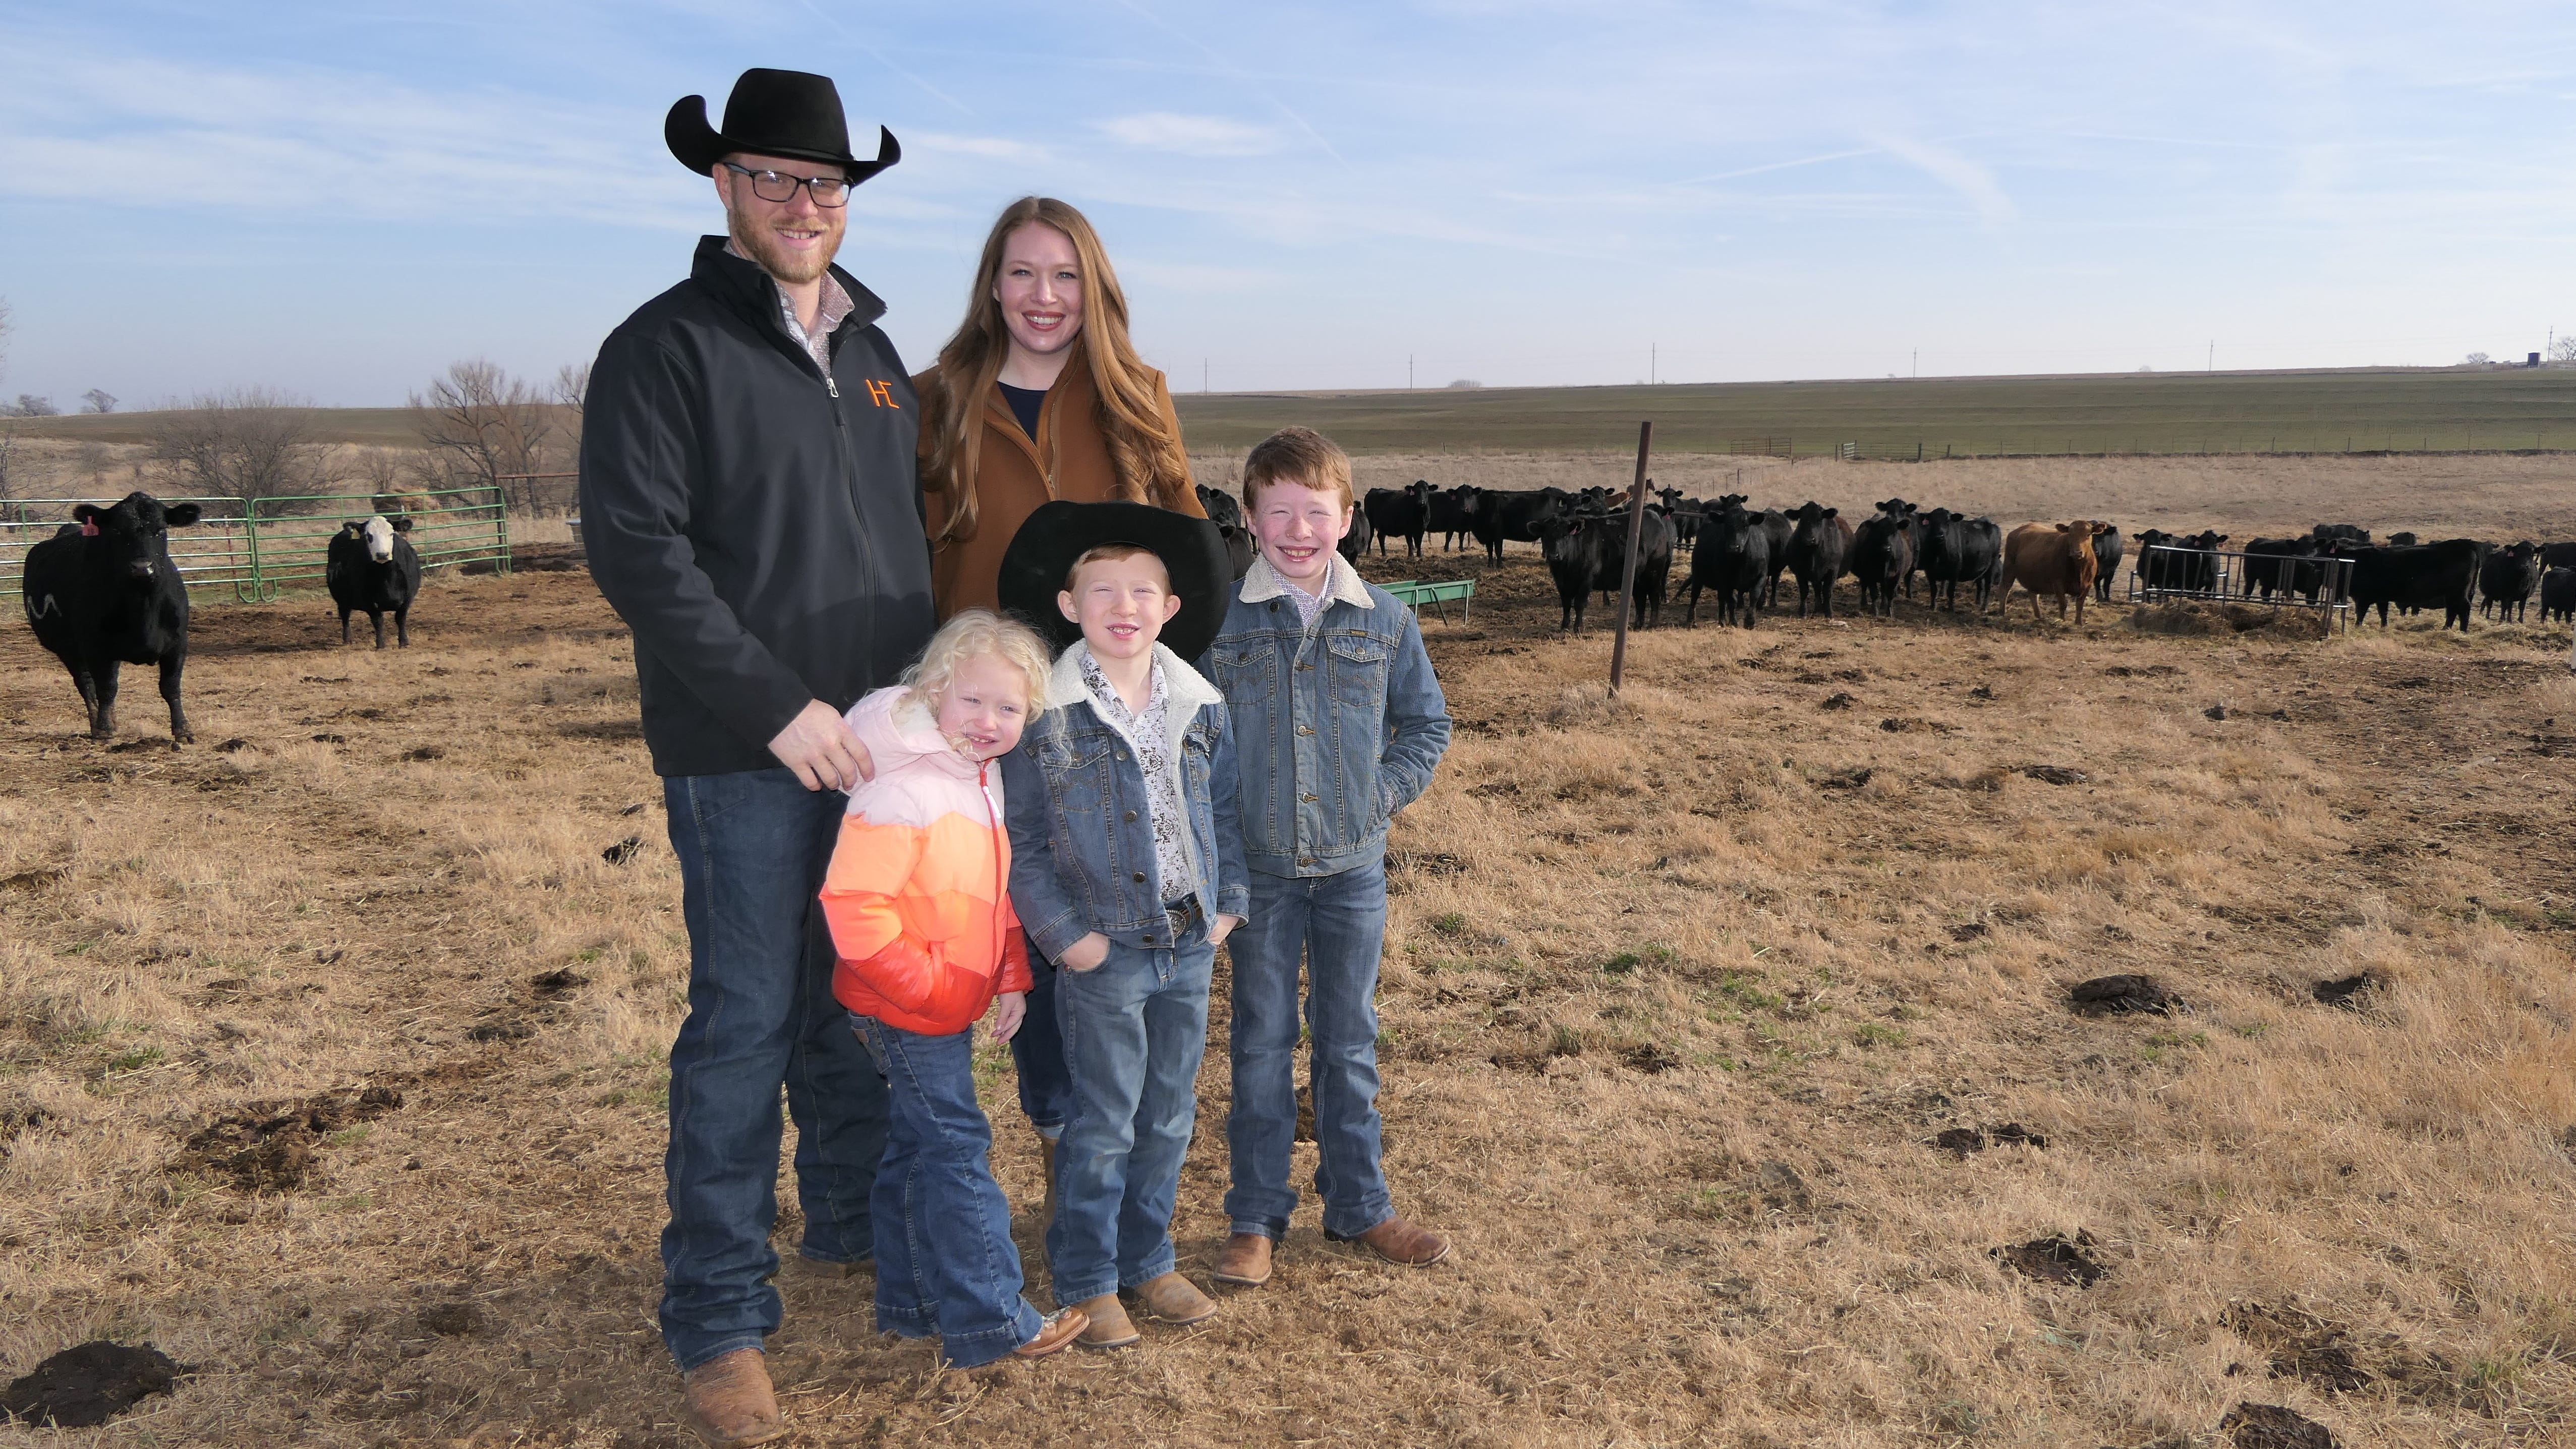 A farmer's wife shares her family with the world